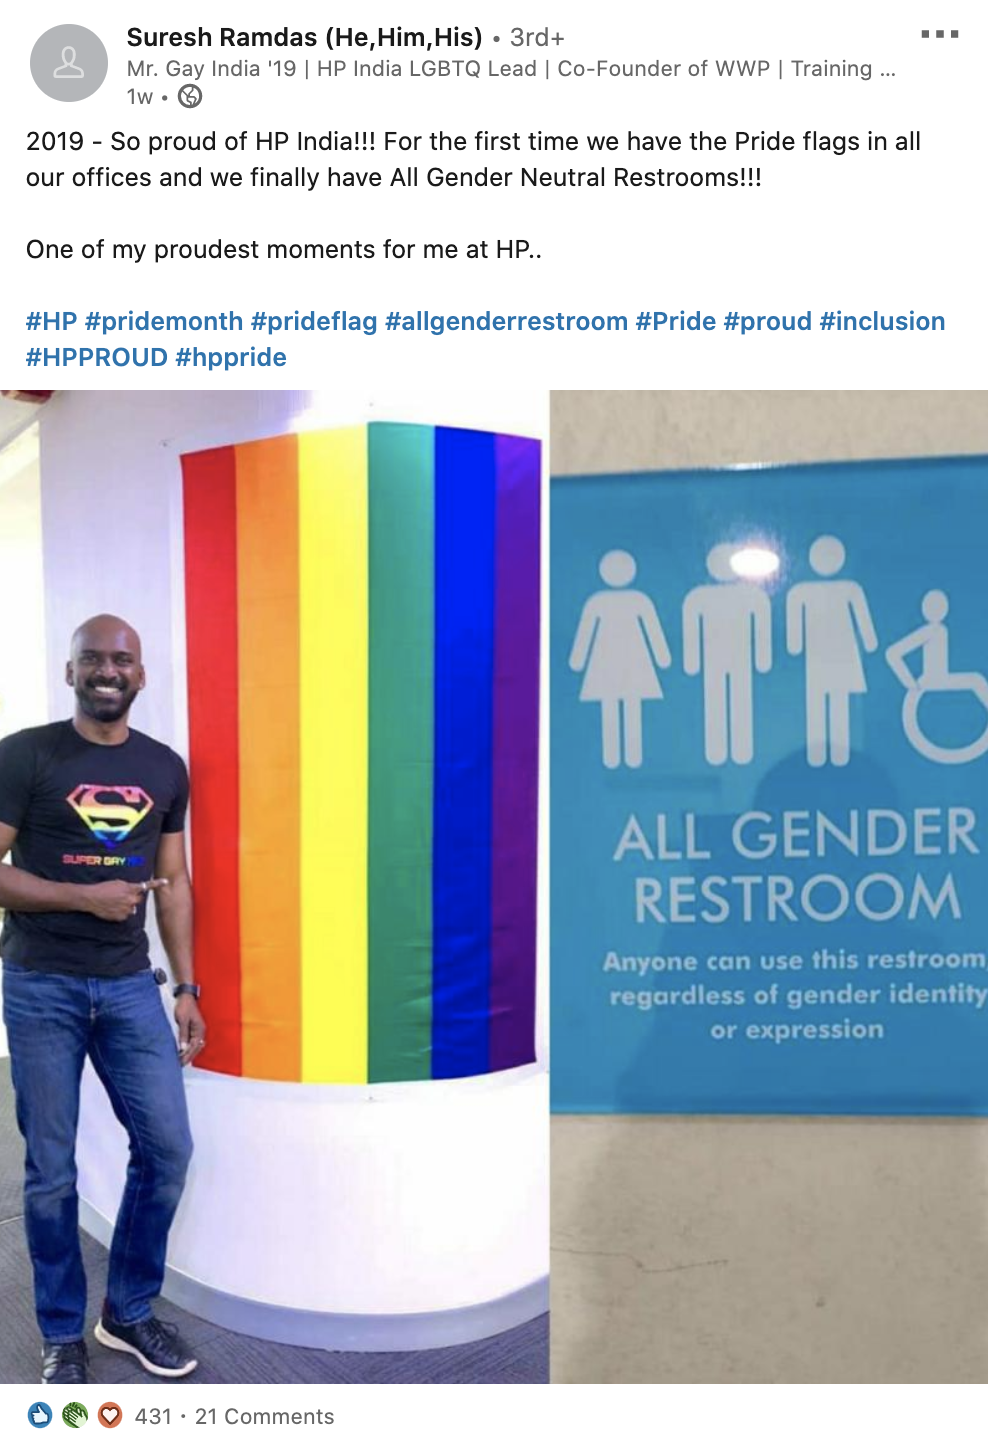 Screenshot of Suresh Ramdas' post on LinkedIn with photo of him standing next to Pride flag and photo of All Gender Restroom sign. Post reads:  So proud of HP India!!! For the first time we have the Pride flags in all our offices and we finally have All Gender Neutral Restrooms!!!  One of my proudest moments for me at HP.  #HP #pridemonth #prideflag #allgenderrestroom #Pride #proud #inclusion #HPPROUD #hppride